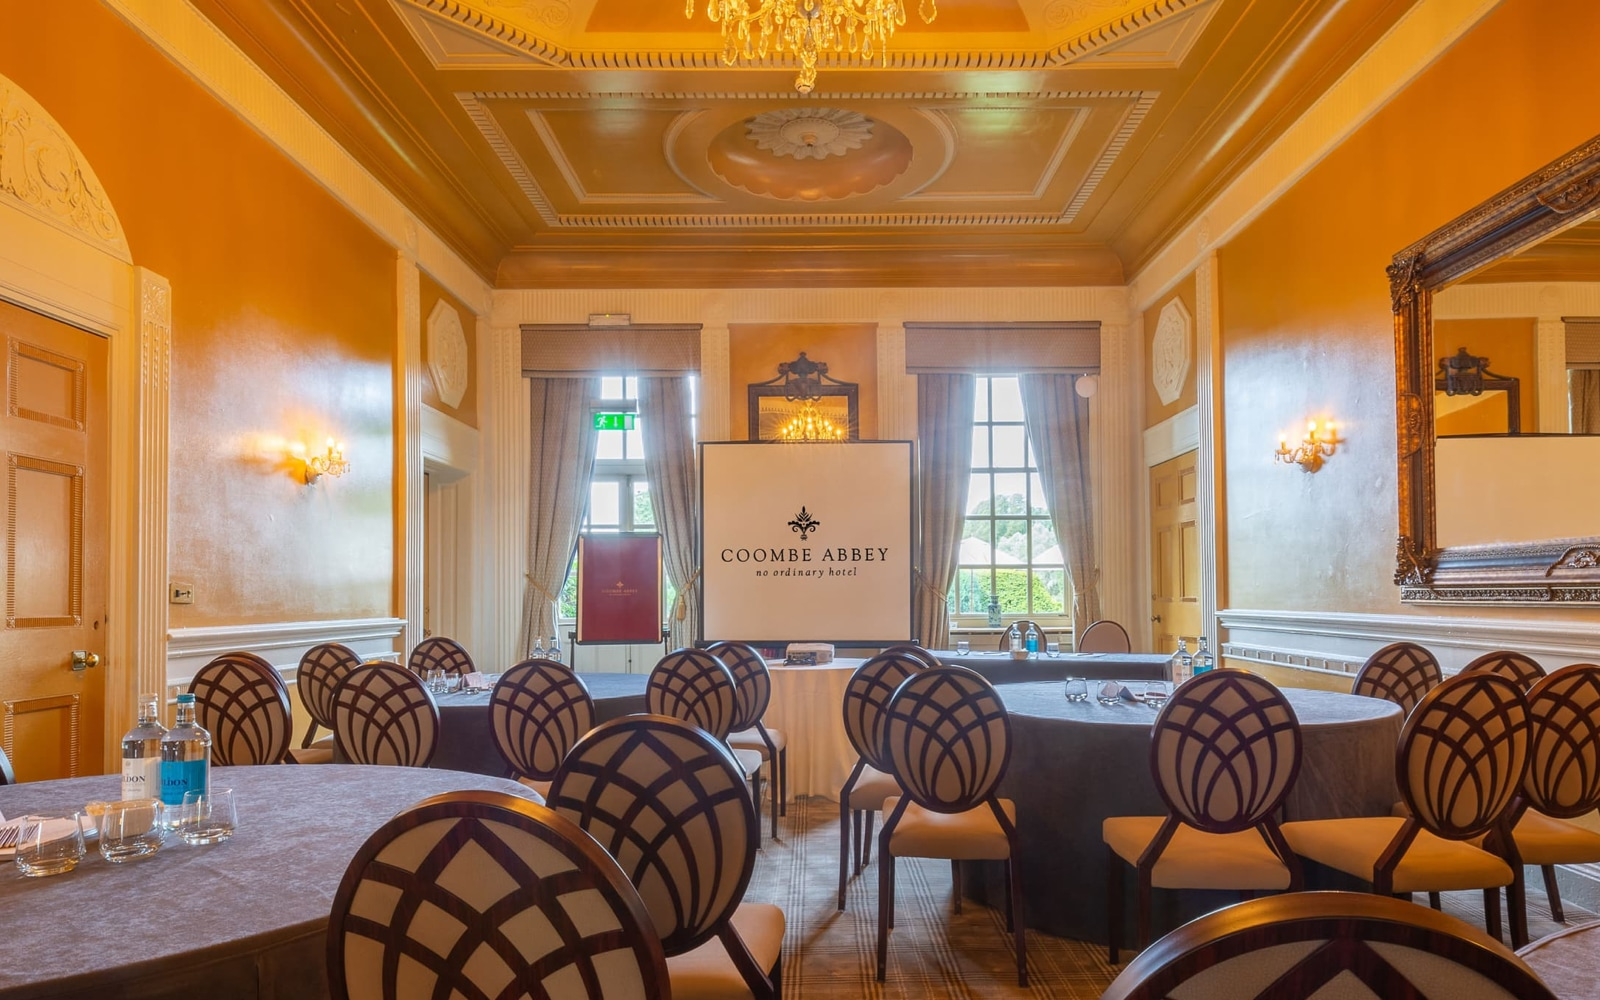 Conferences at Coombe Abbey Hotel